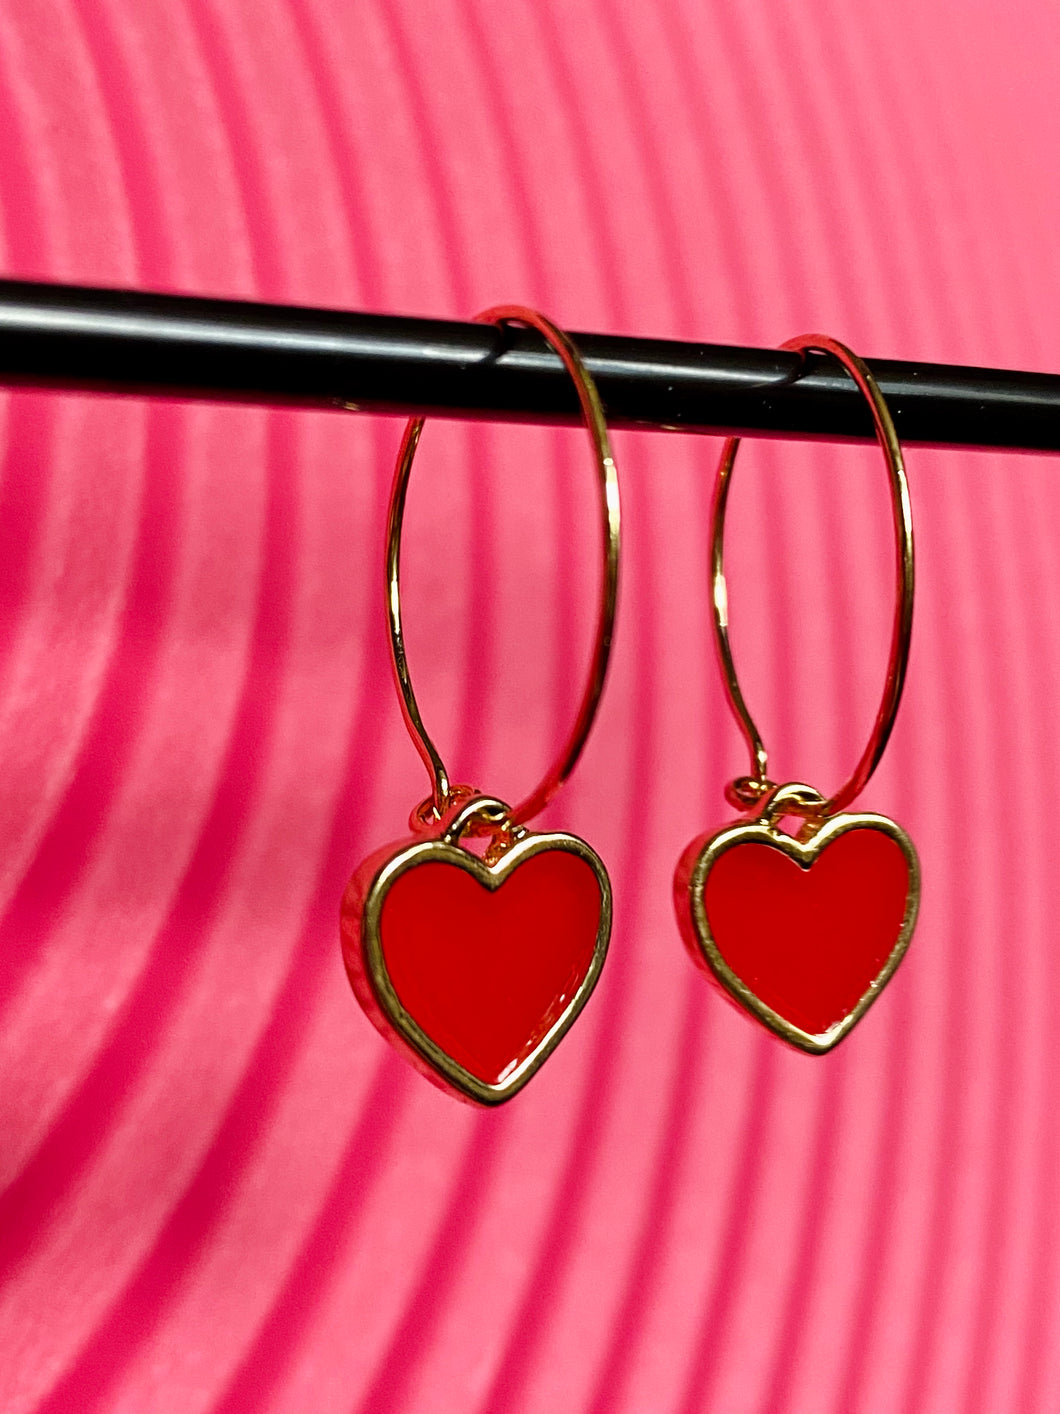 Vintage Inspired Hoops Earrings in Gold with Red Heart Pendant